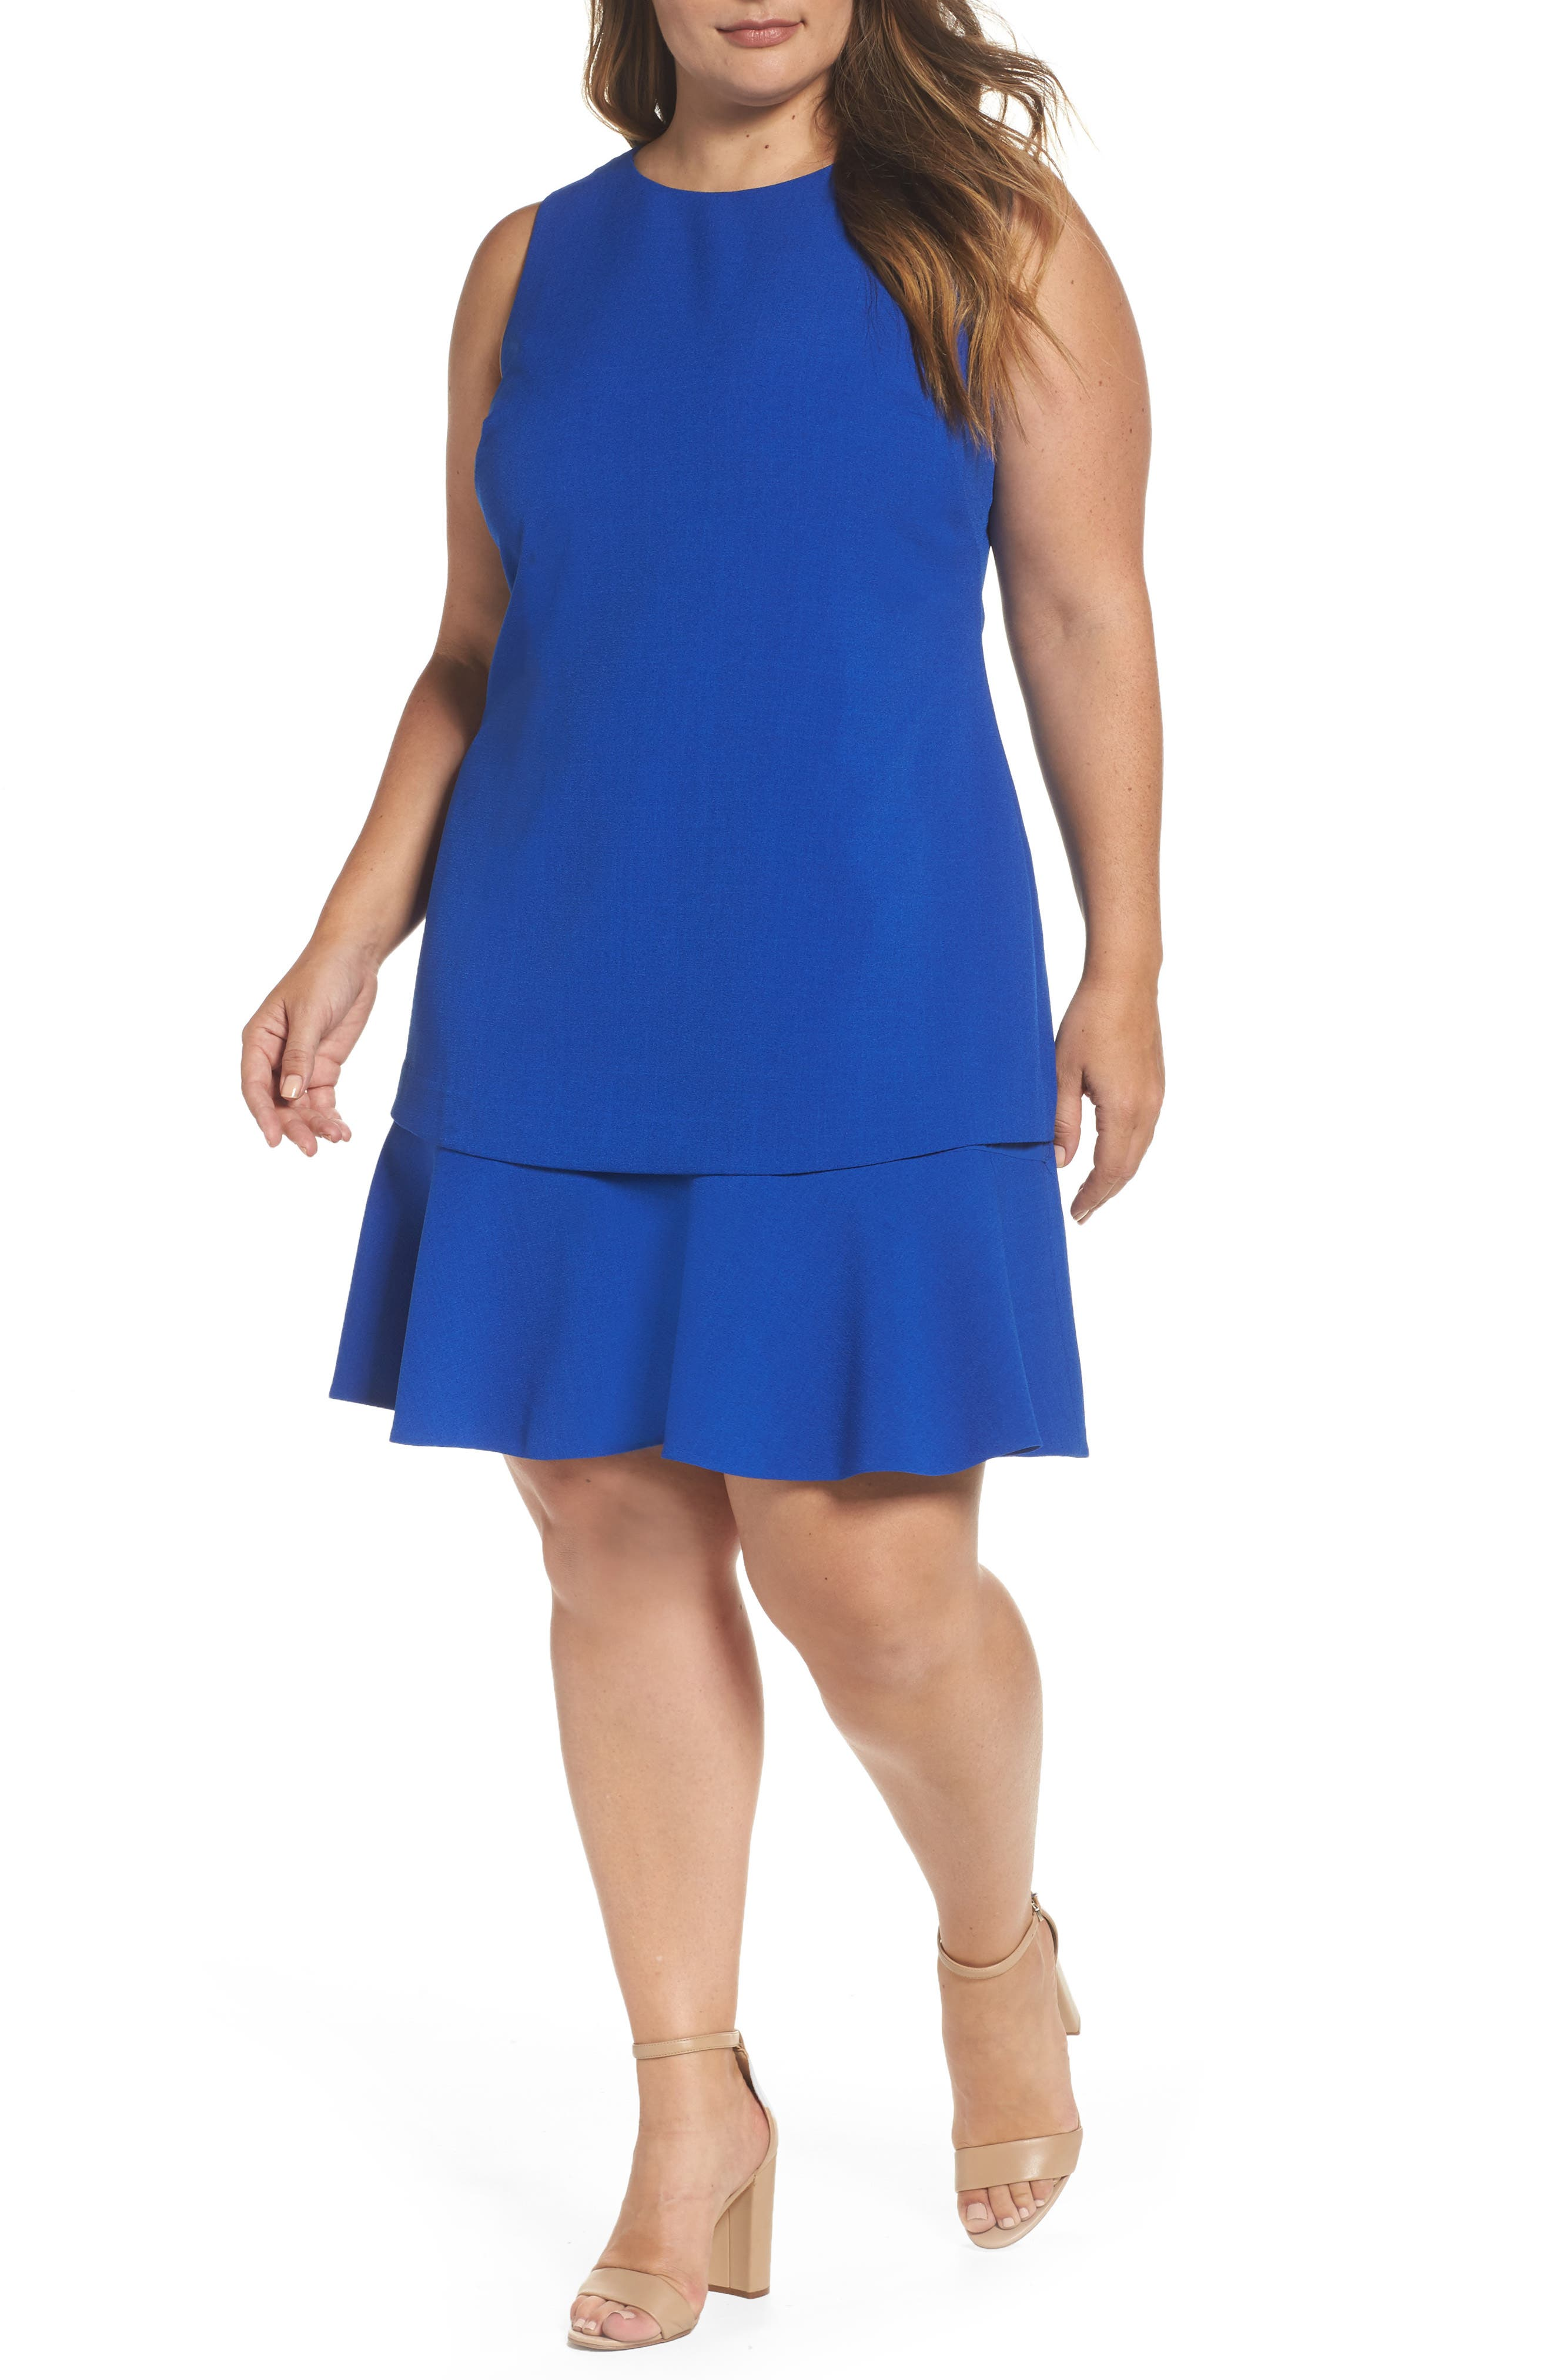 Alternate Image 1 Selected - Eliza J Tiered Drop Waist A-Line Dress (Plus Size)